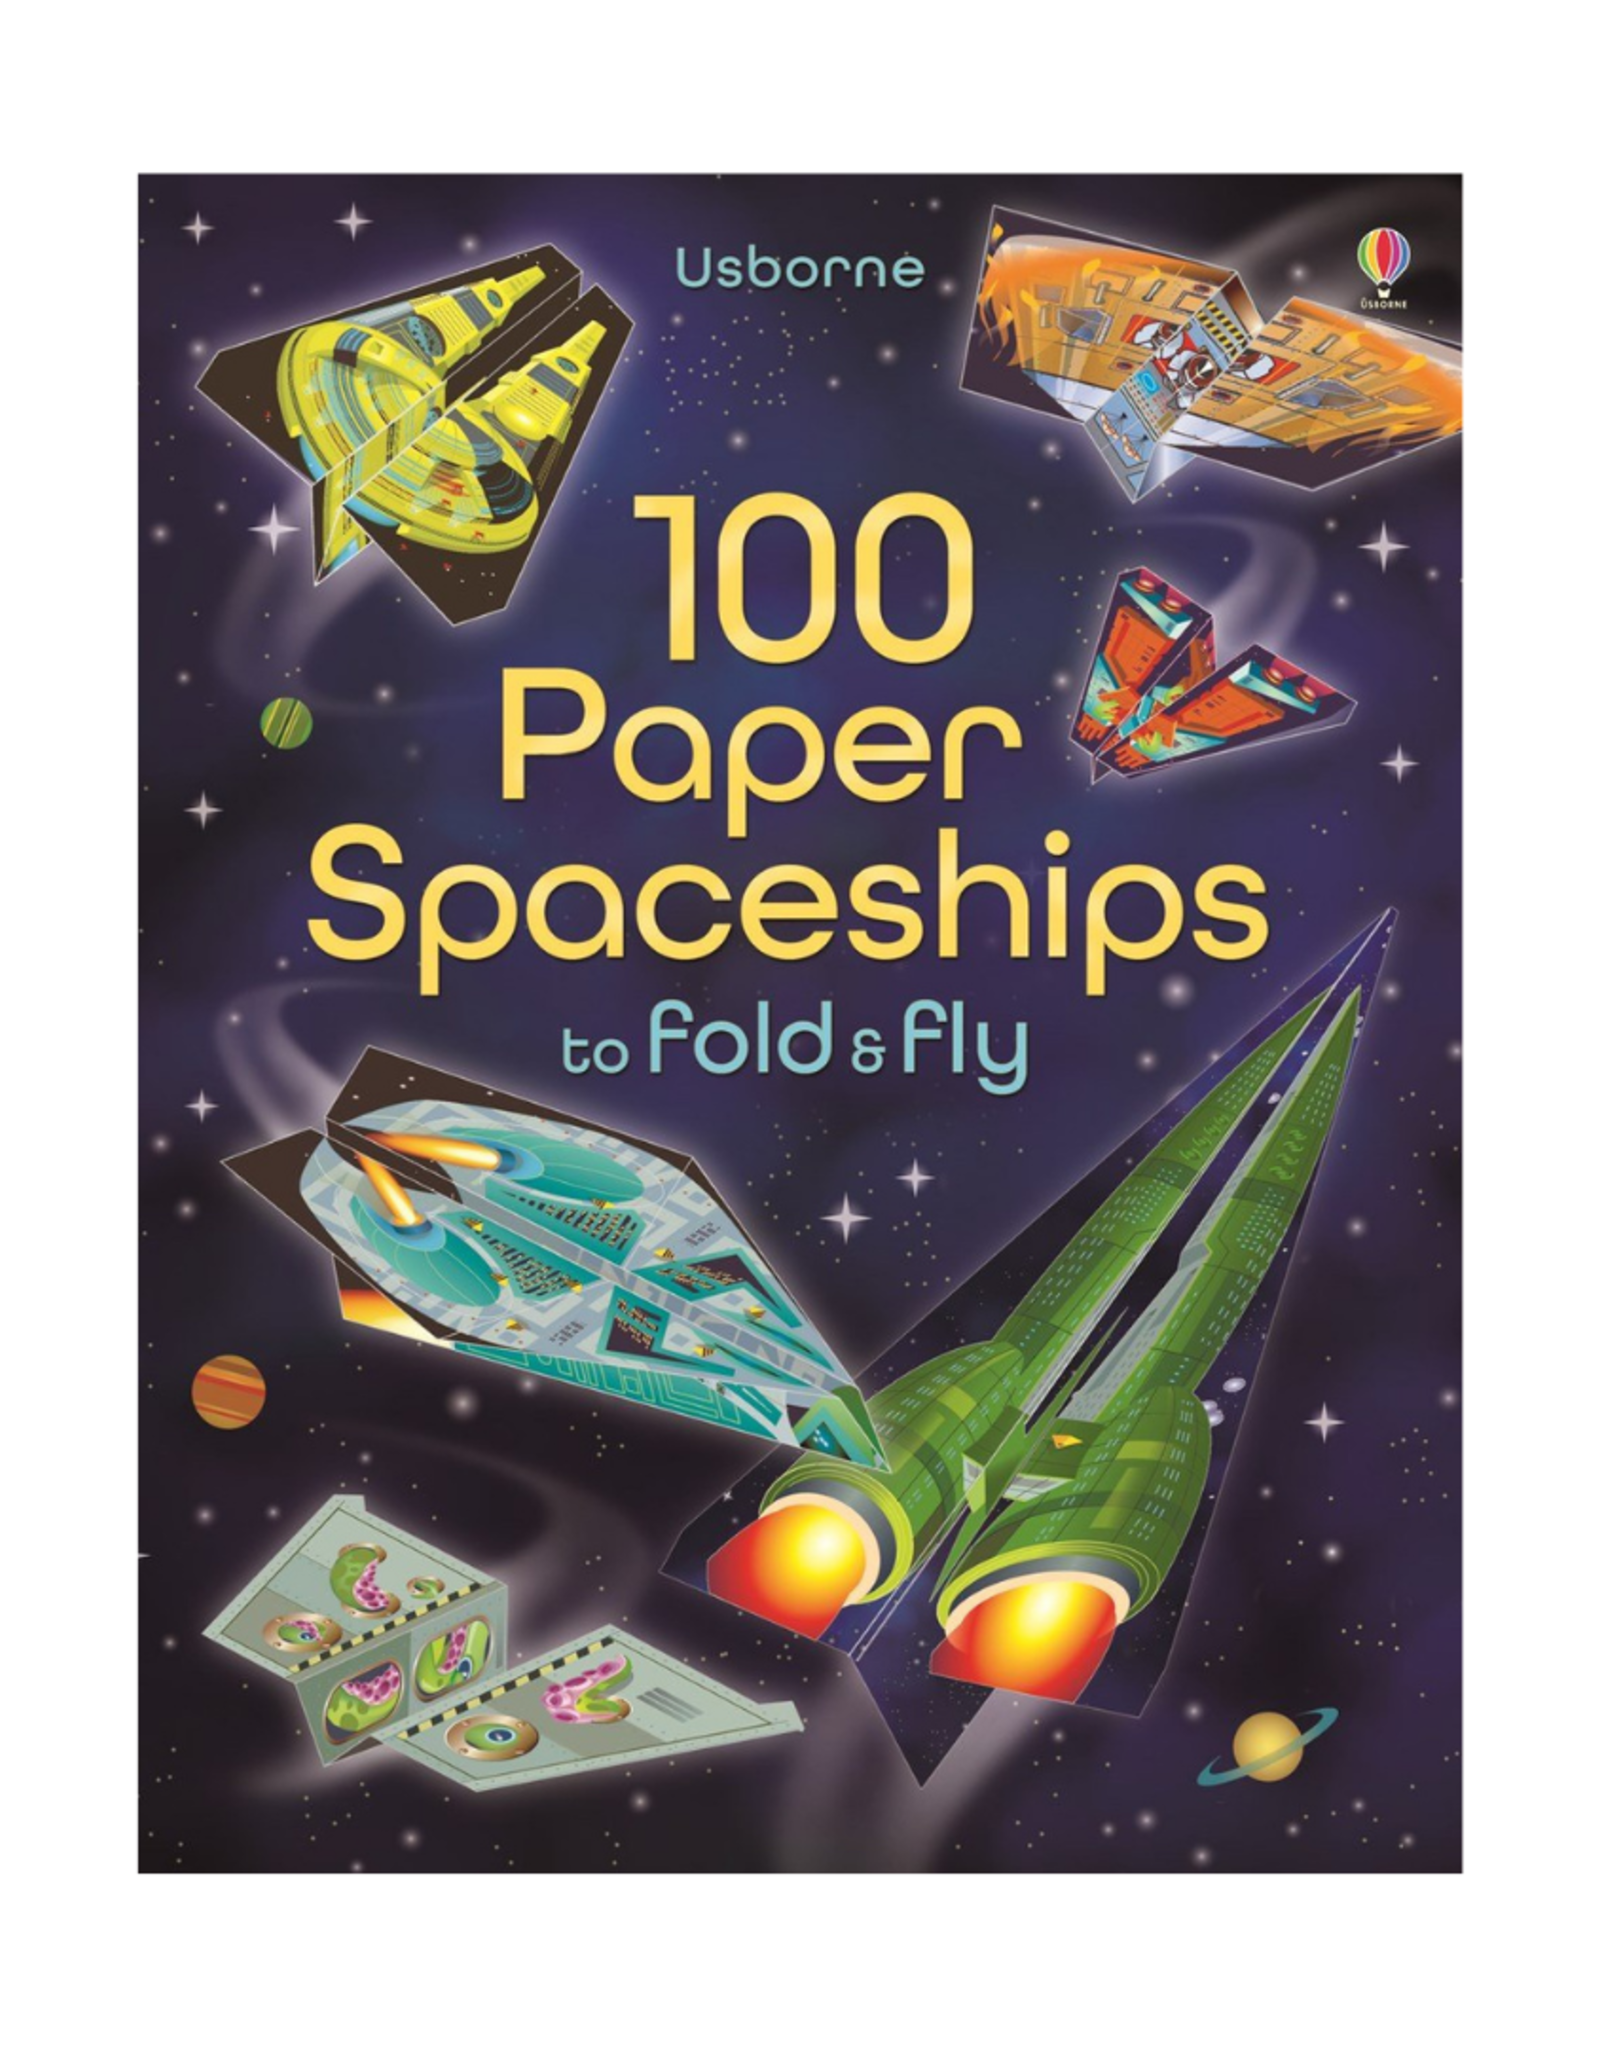 100 Paper Spaceships to fold and fly